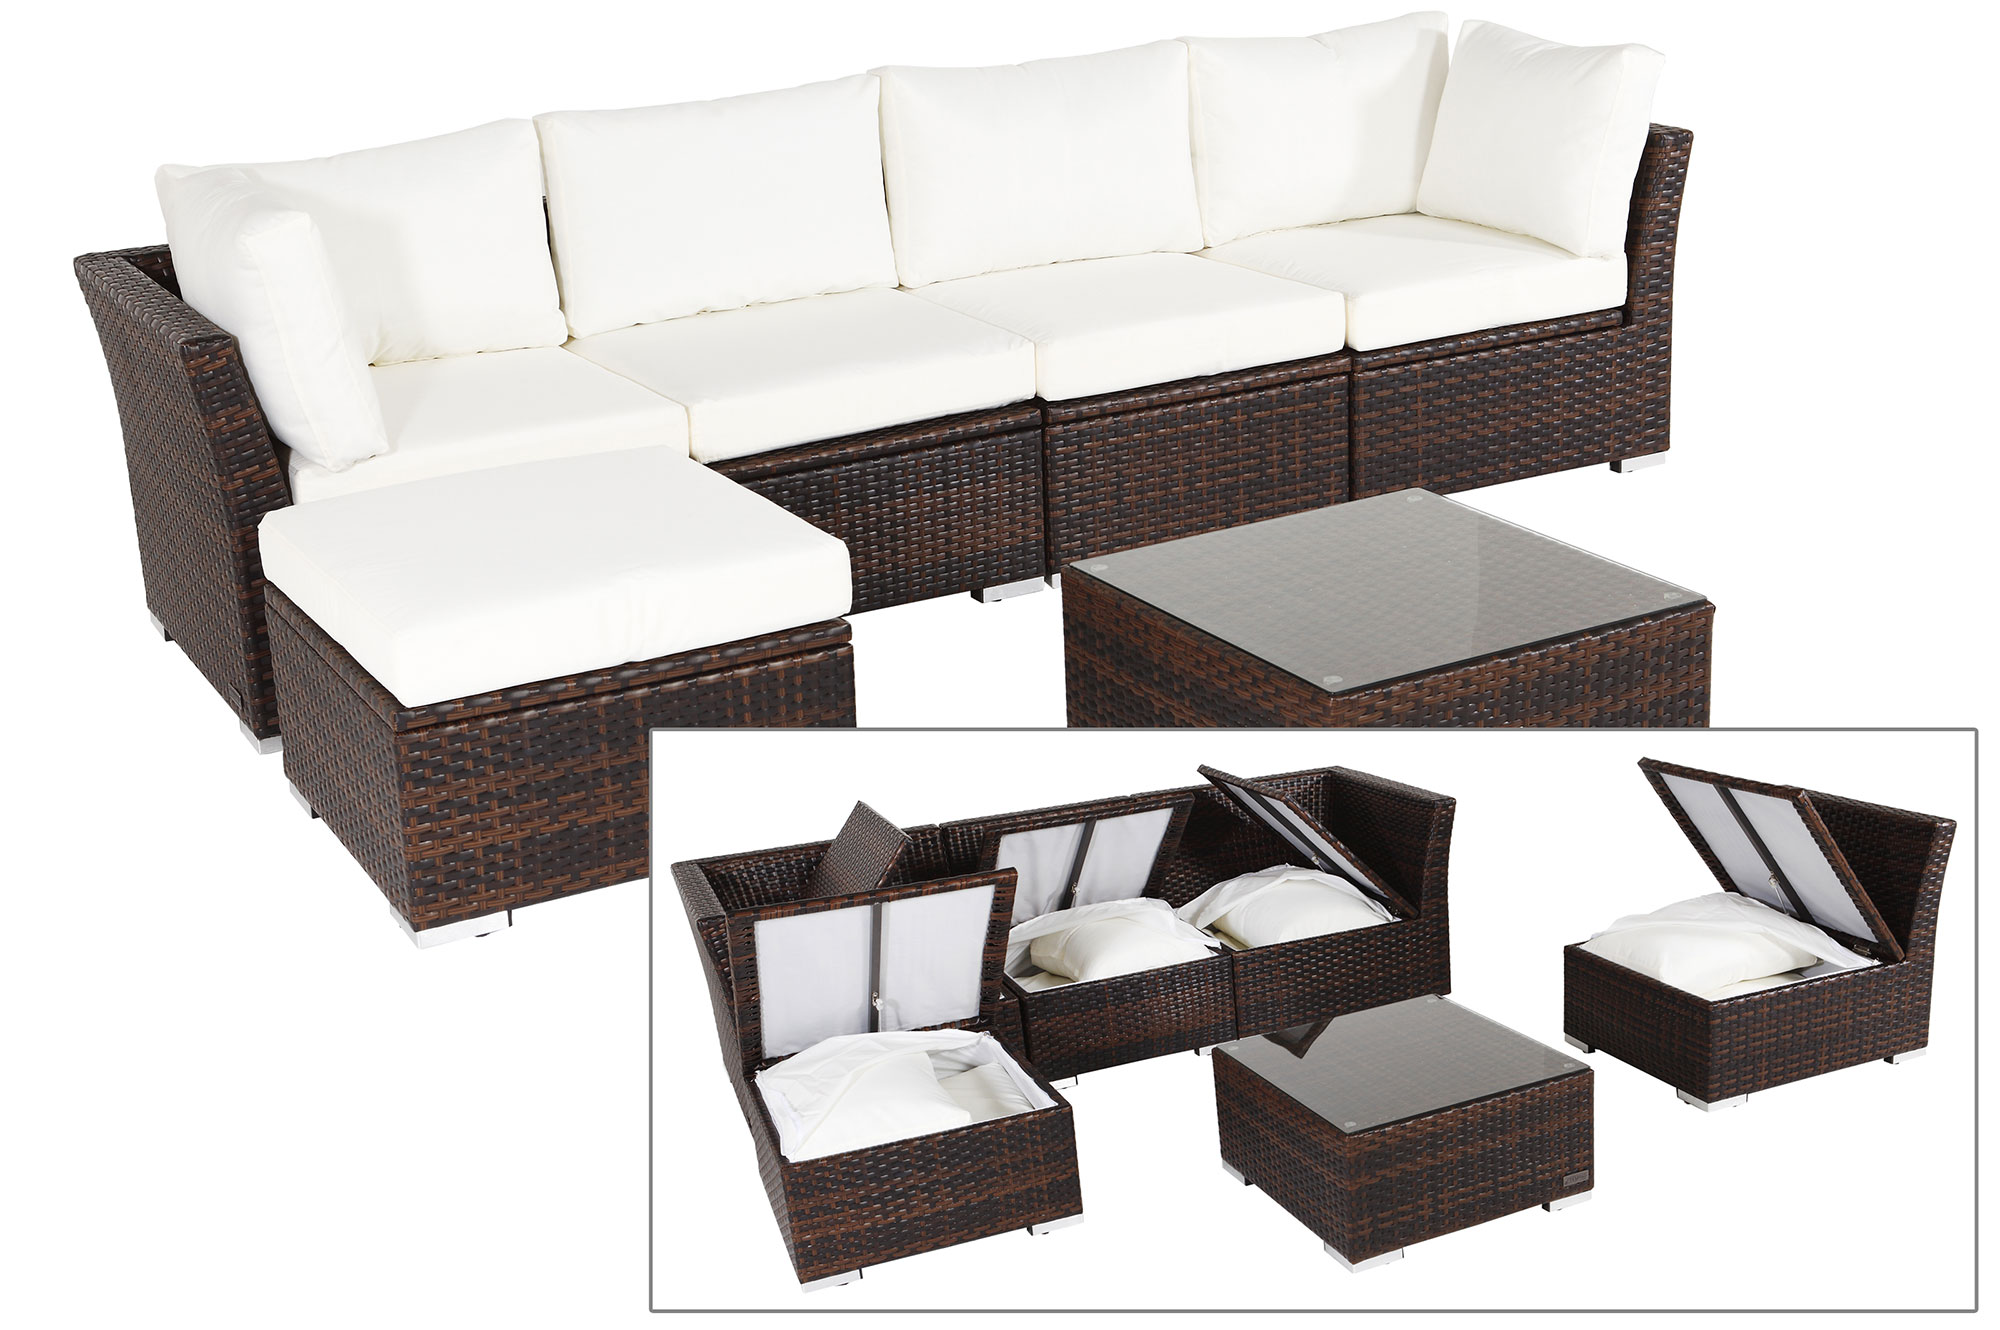 gartenmobel polyrattan von outflexx. Black Bedroom Furniture Sets. Home Design Ideas